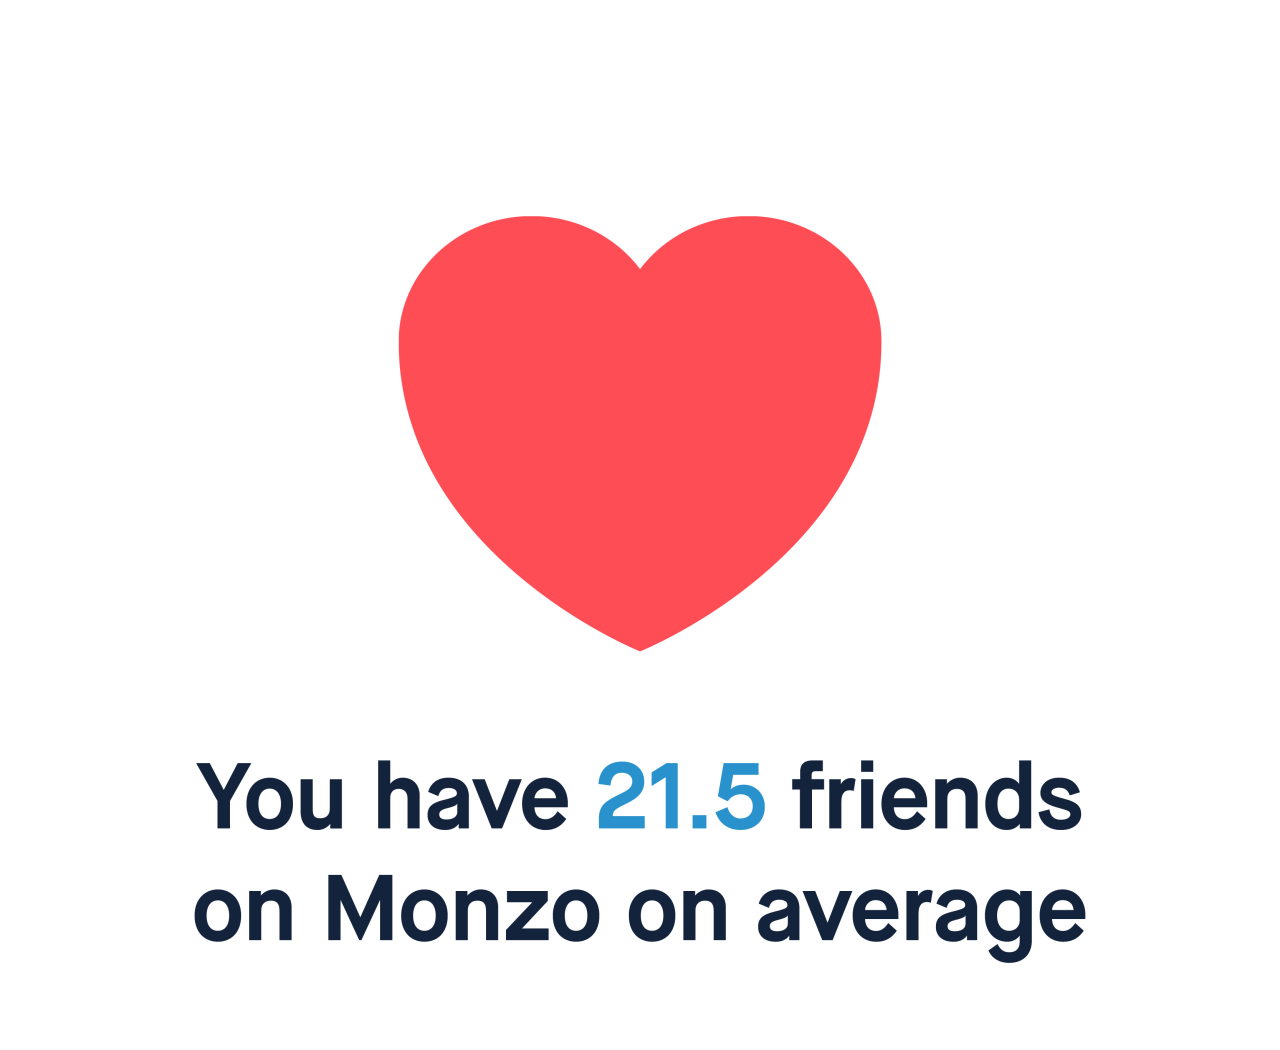 You have 21.5 friends on Monzo on average